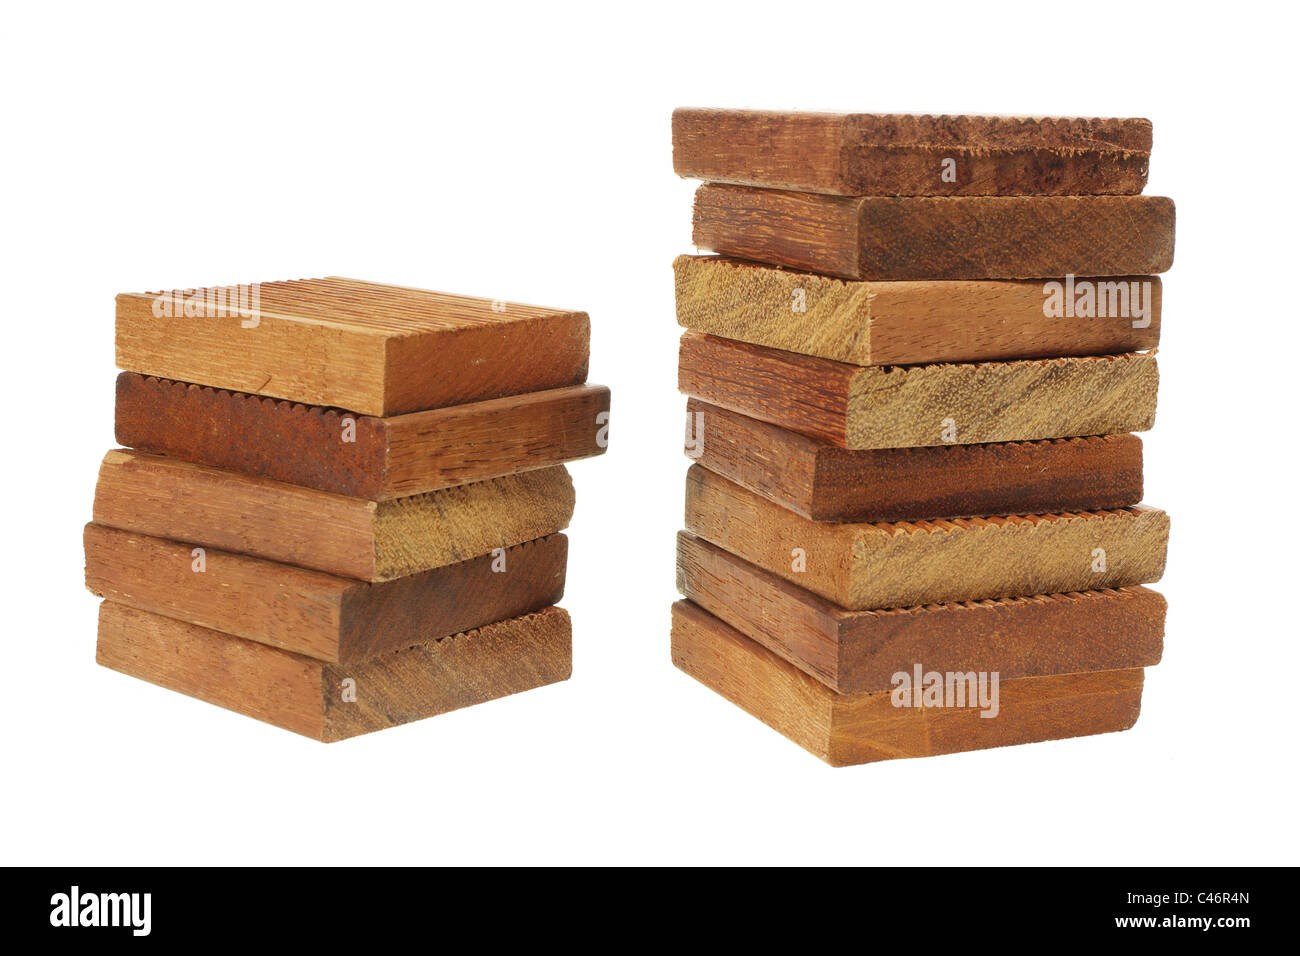 Stacks of Wood Blocks - Stock Image